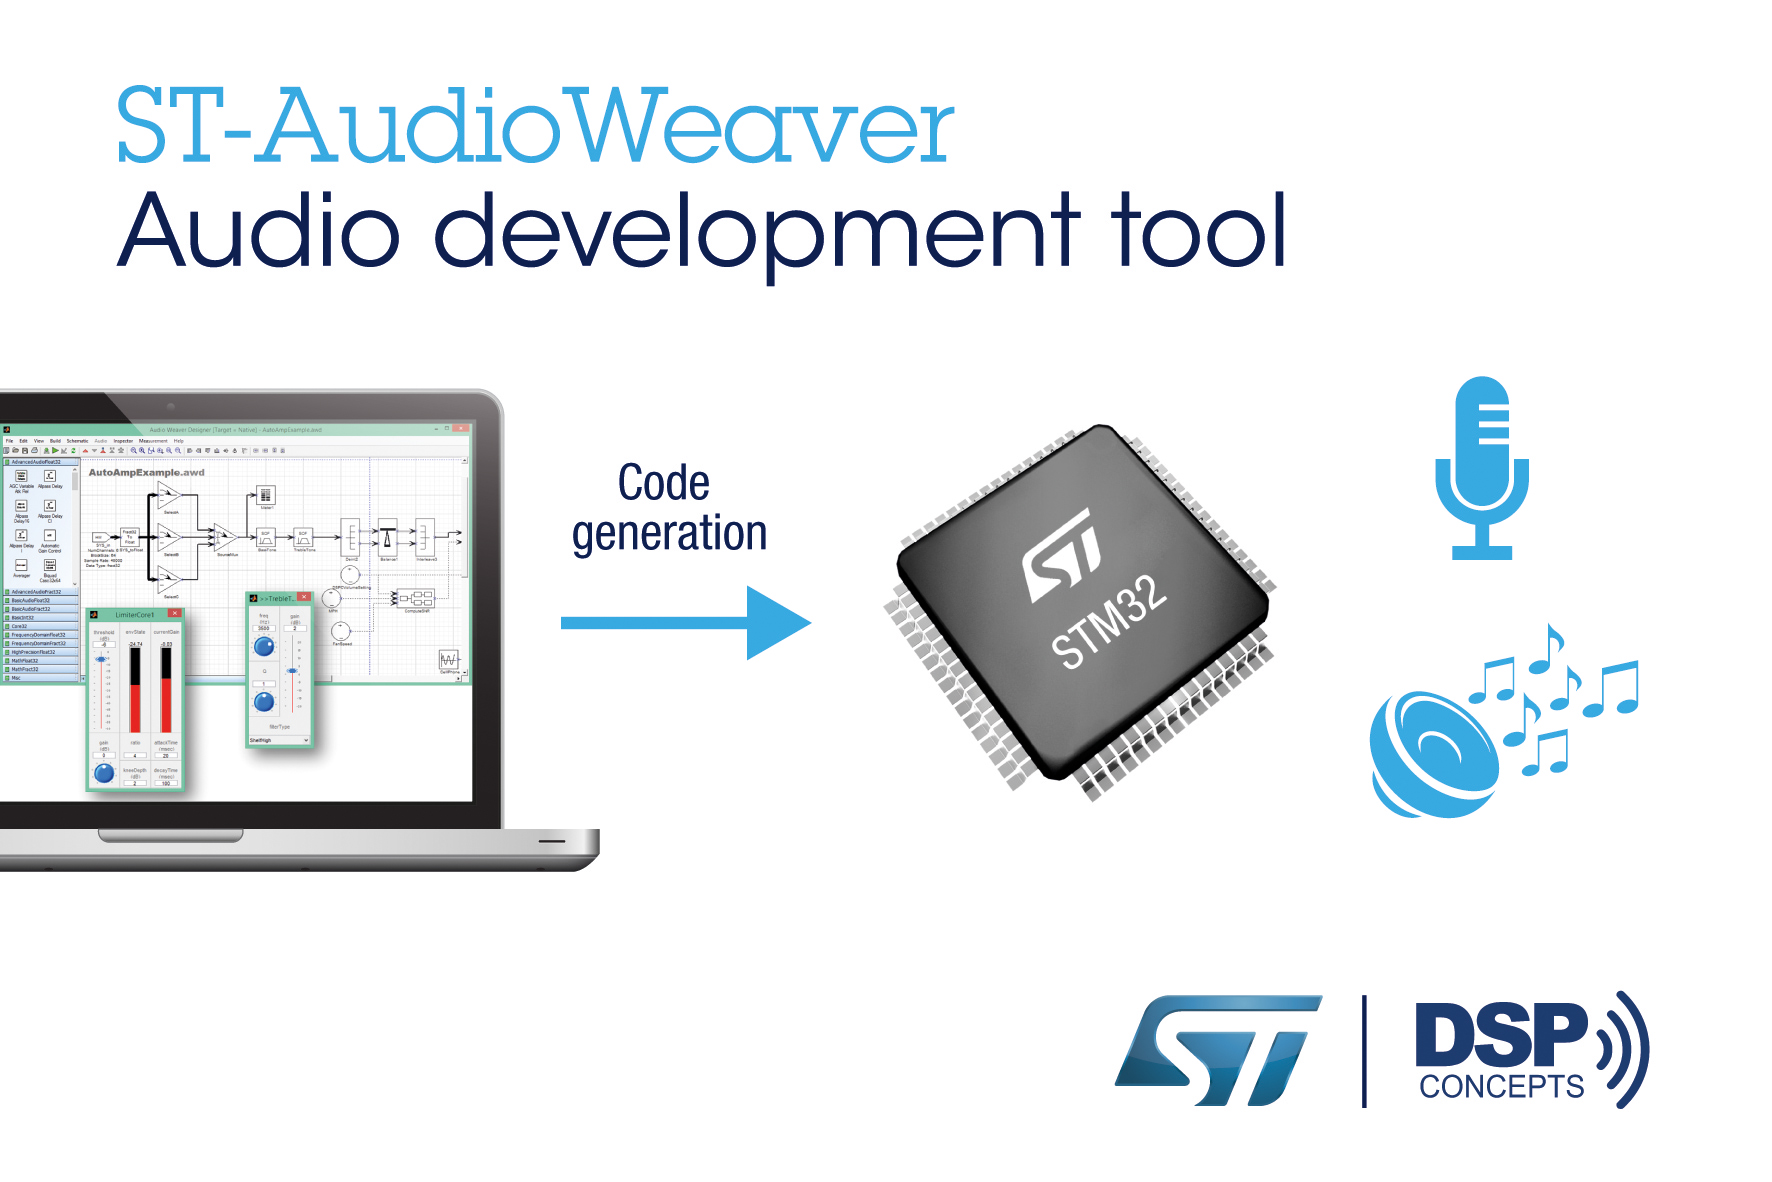 Stmicroelectronics Teams With Dsp Concepts To Give Stm32 Users Free Electronic Design The Spectrum Of Electronics Applications Access Advanced Audio Tool